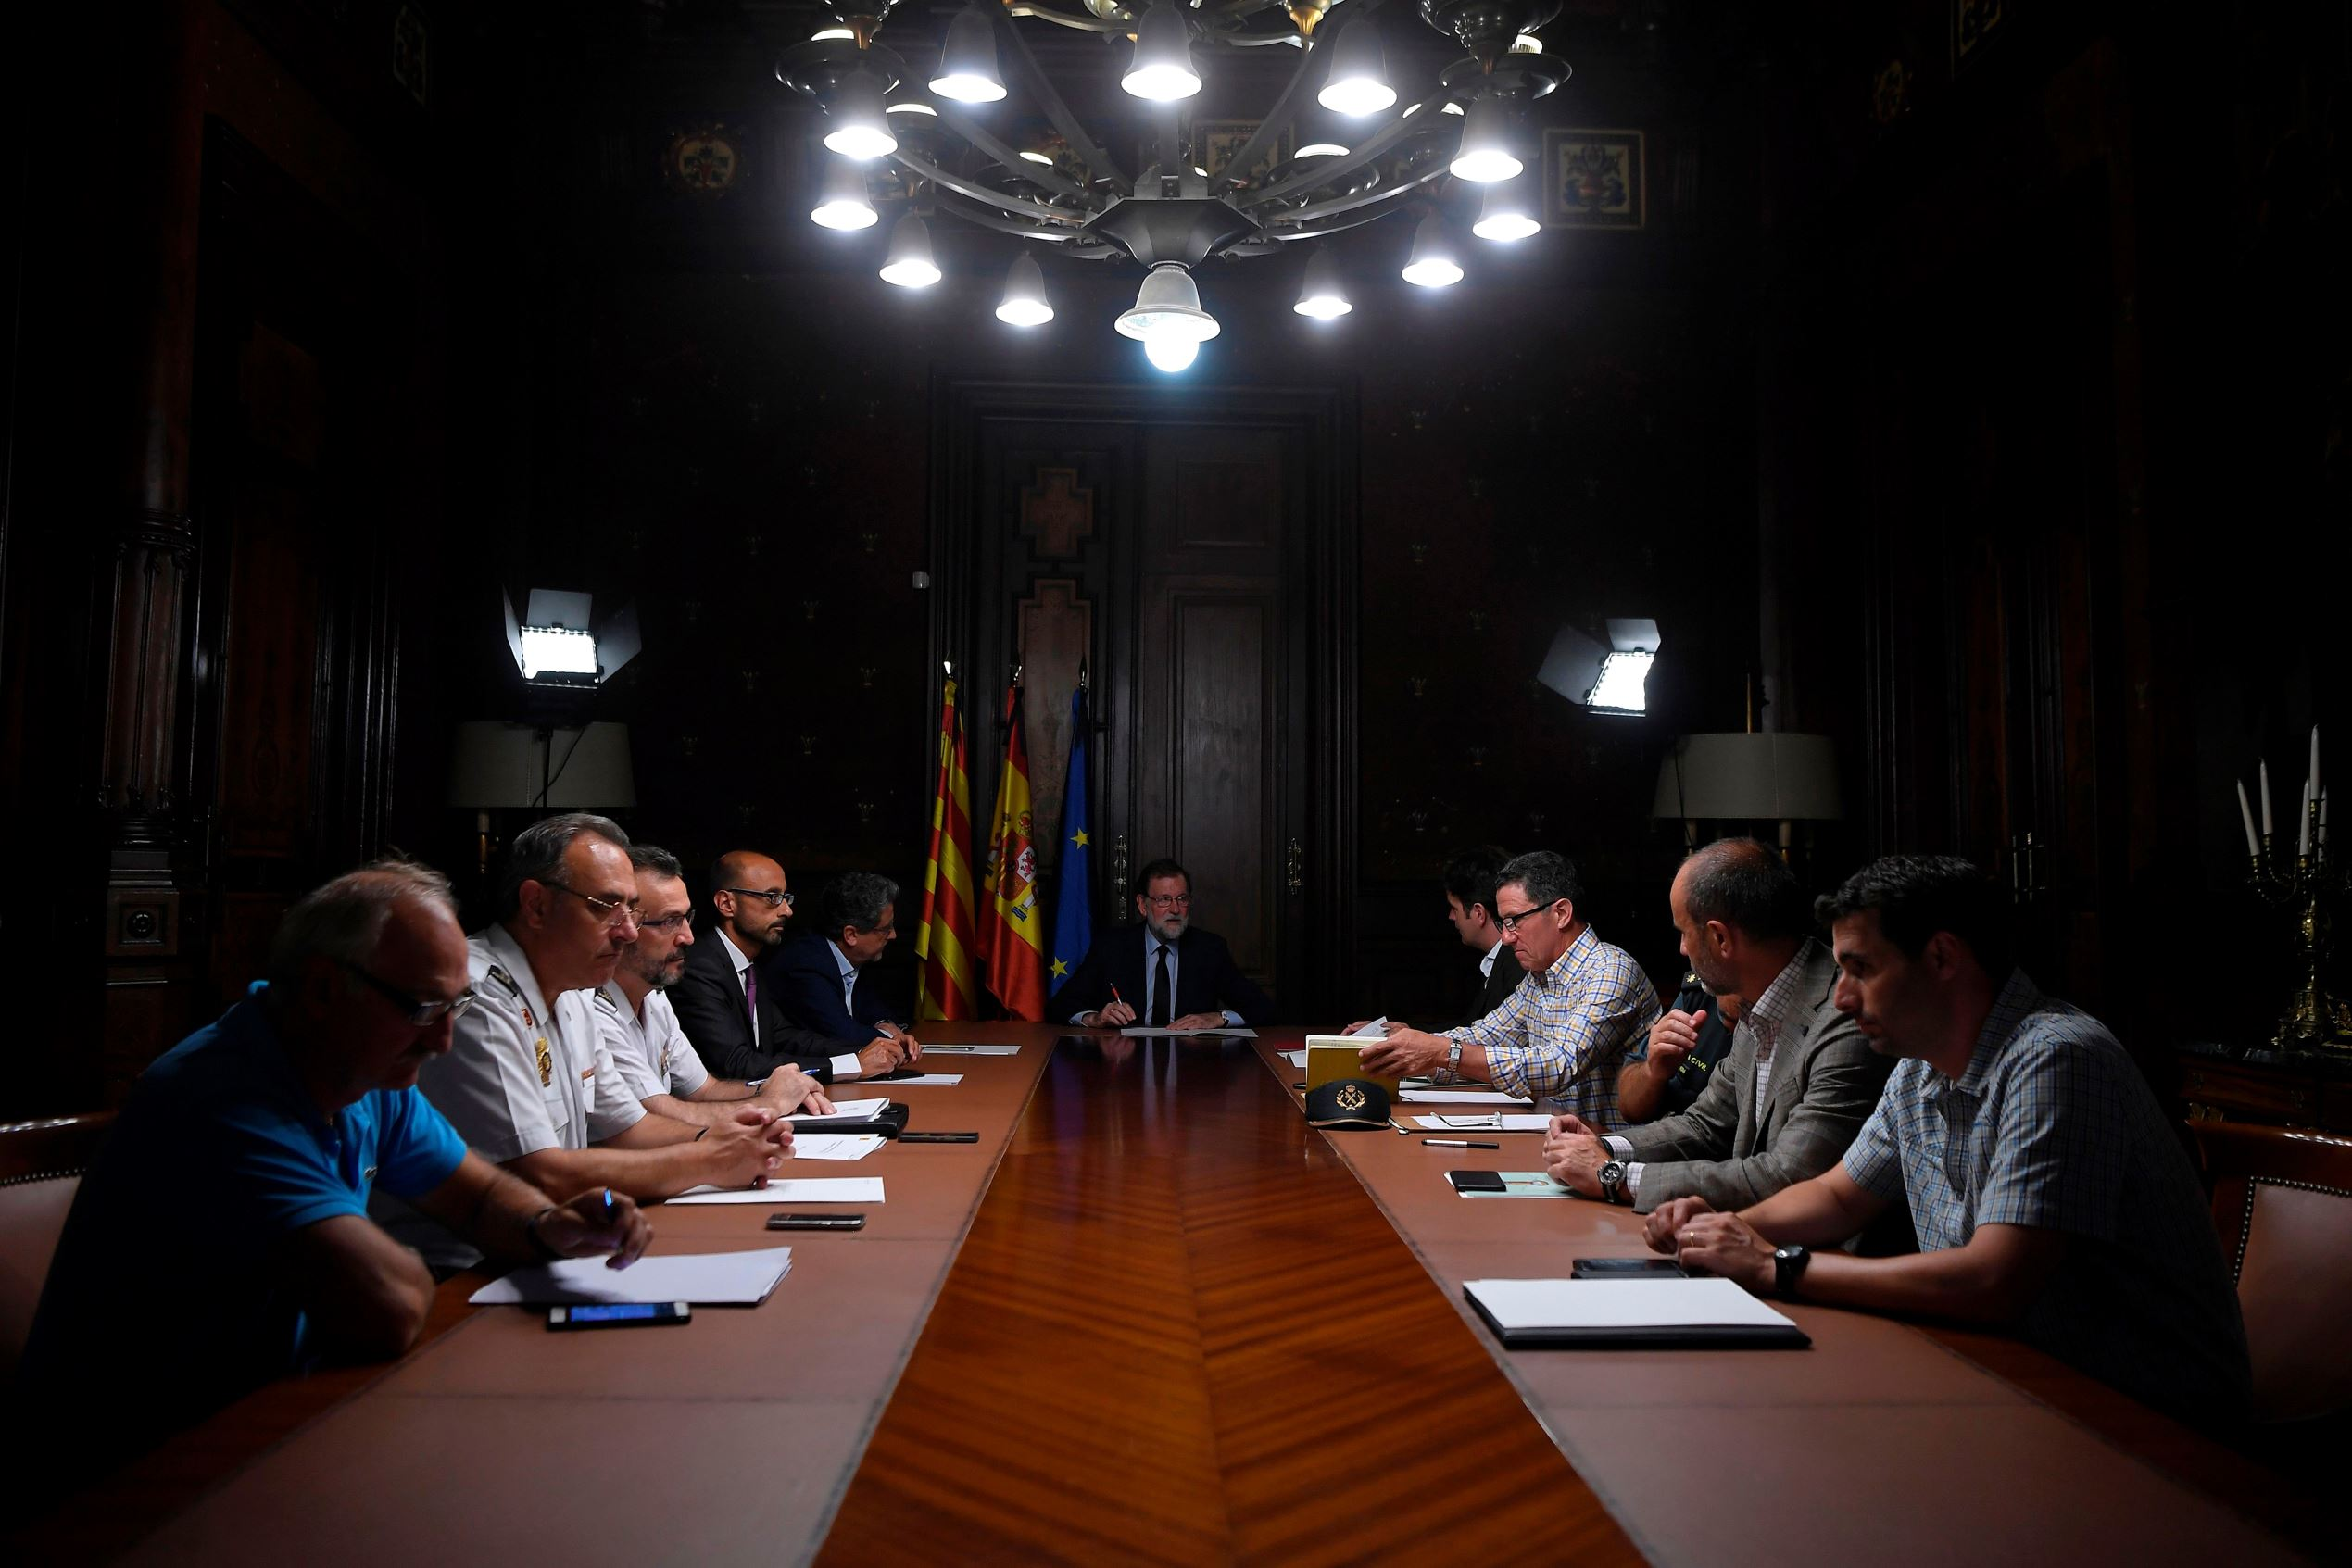 Slide 1 of 30: Spanish Prime Minister Mariano Rajoy, center, speaks during a meeting following the attack of Barcelona where a van ploughed into the crowd, killing 13 persons and injuring over 80 on the Rambla in Barcelona, on August 17, 2017.